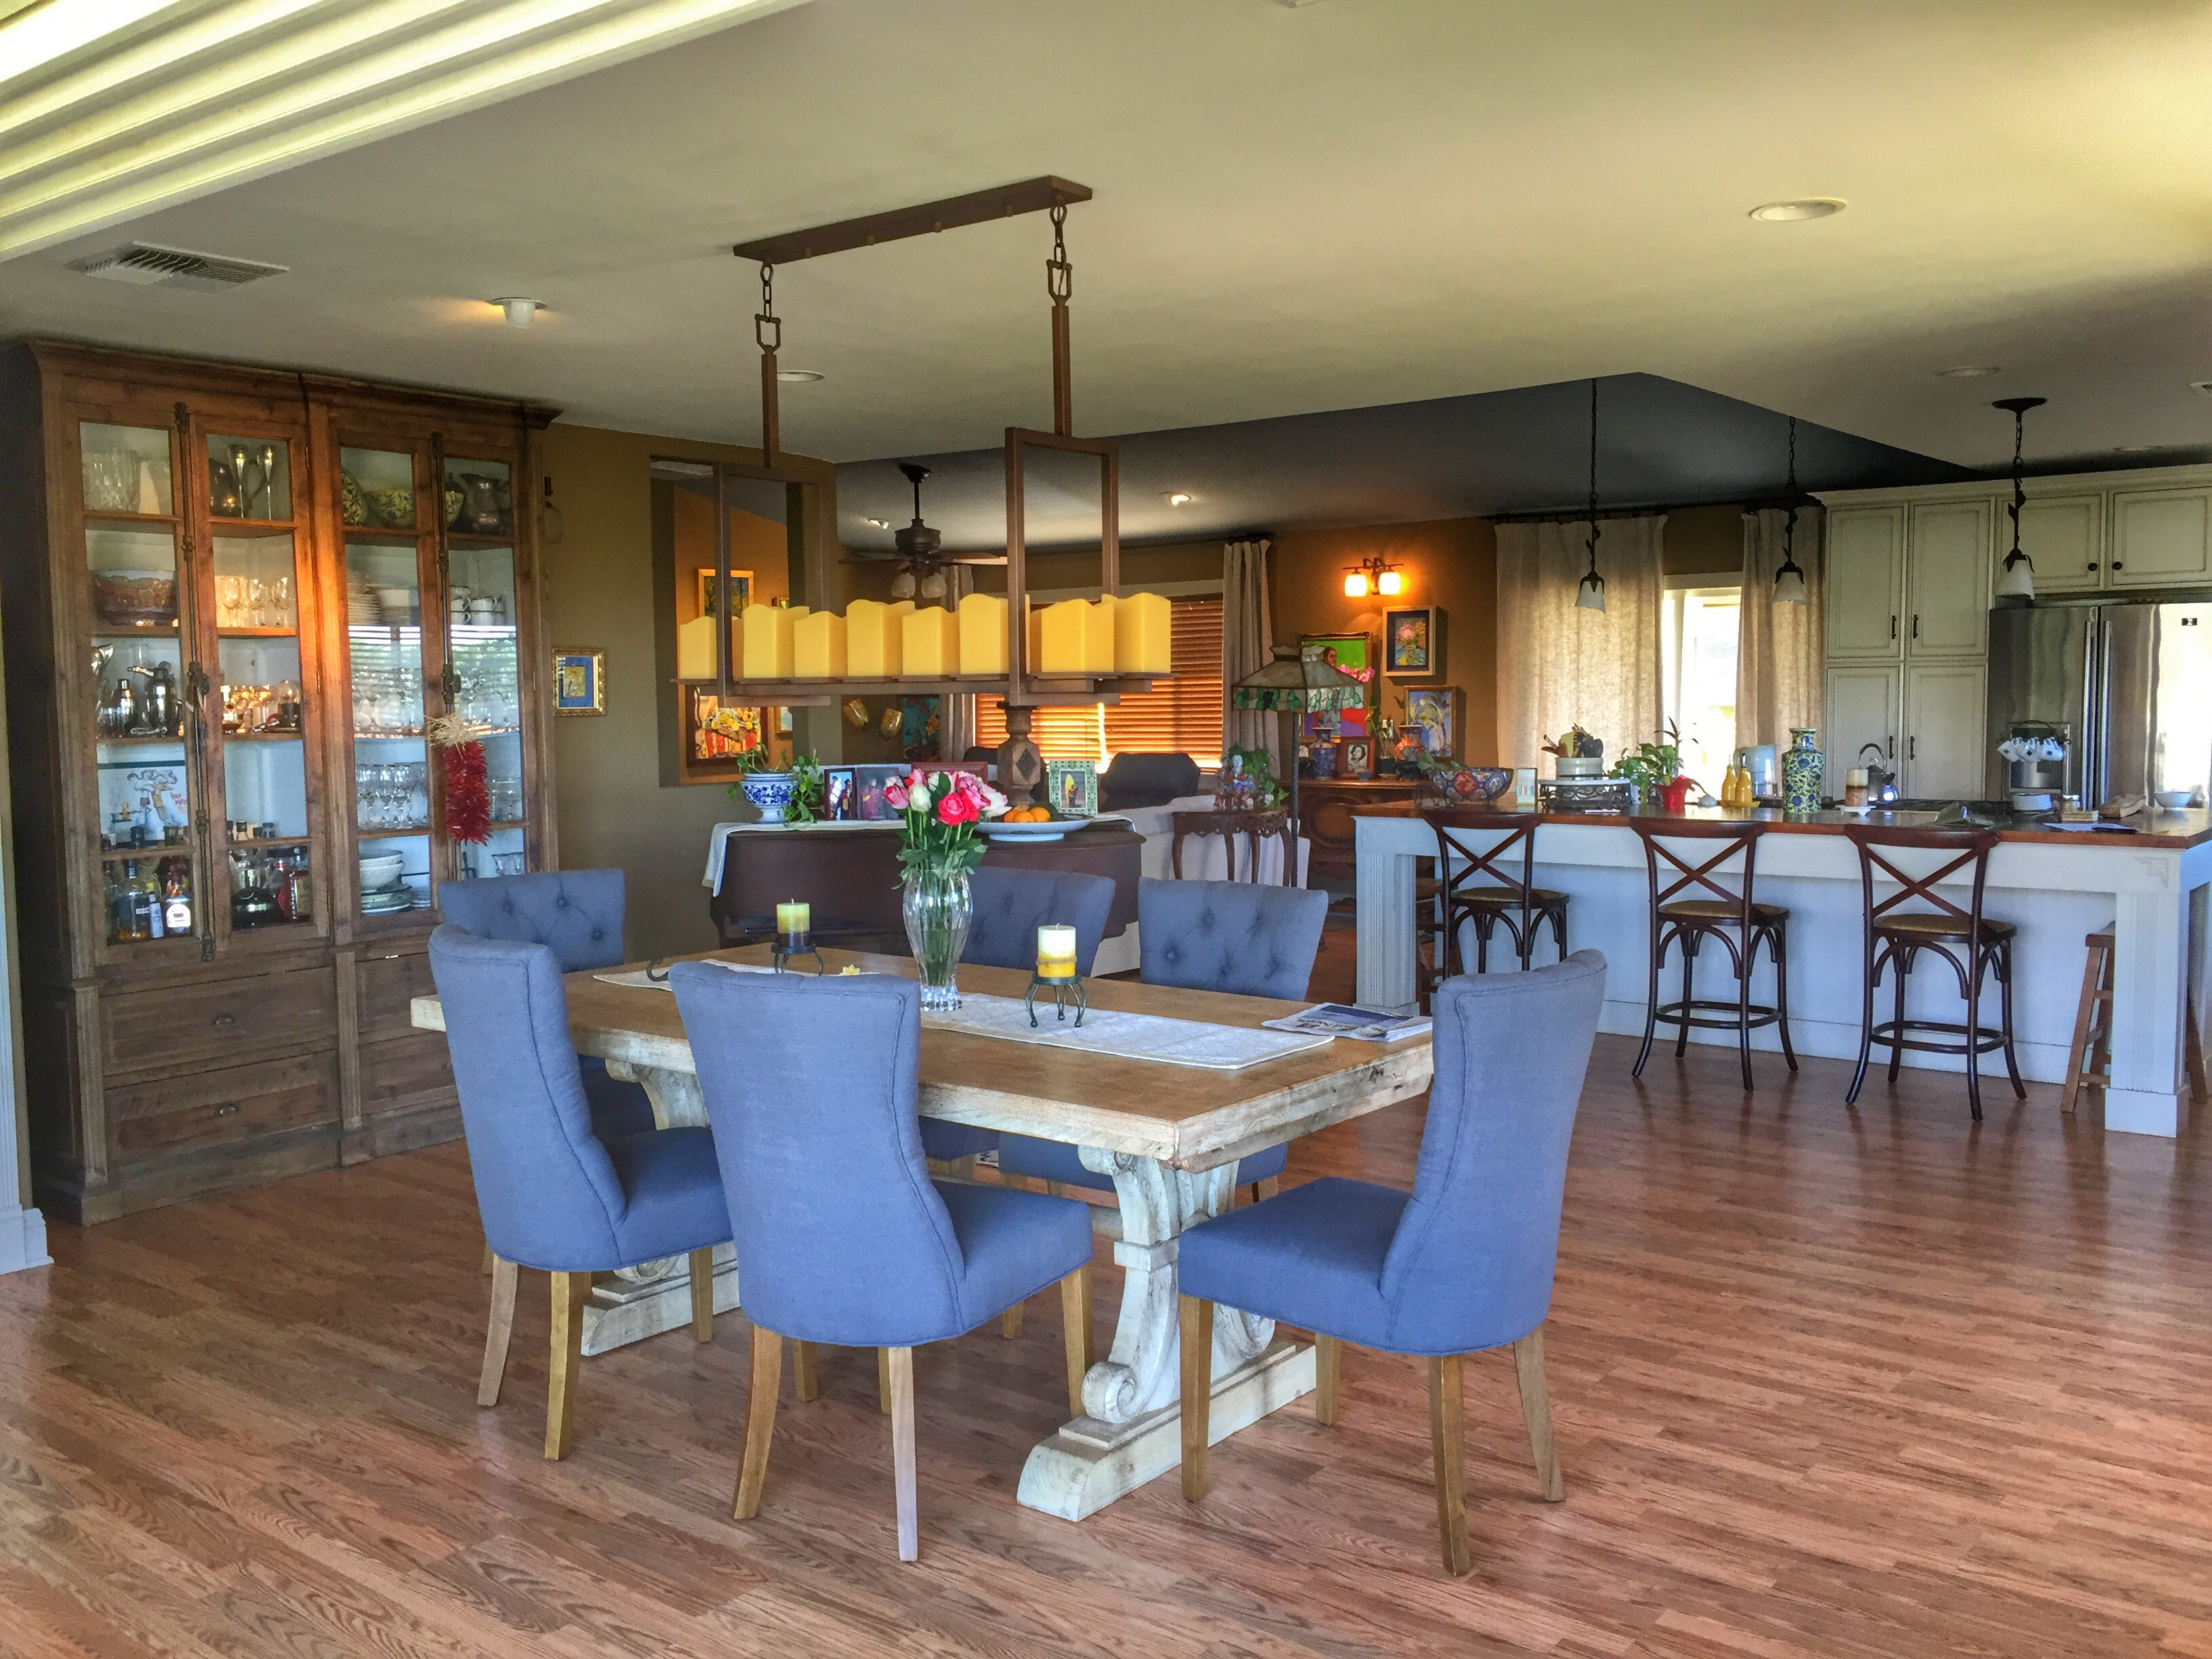 Kihei Family Home & Interior Design Projects - Tim Tattersall Design